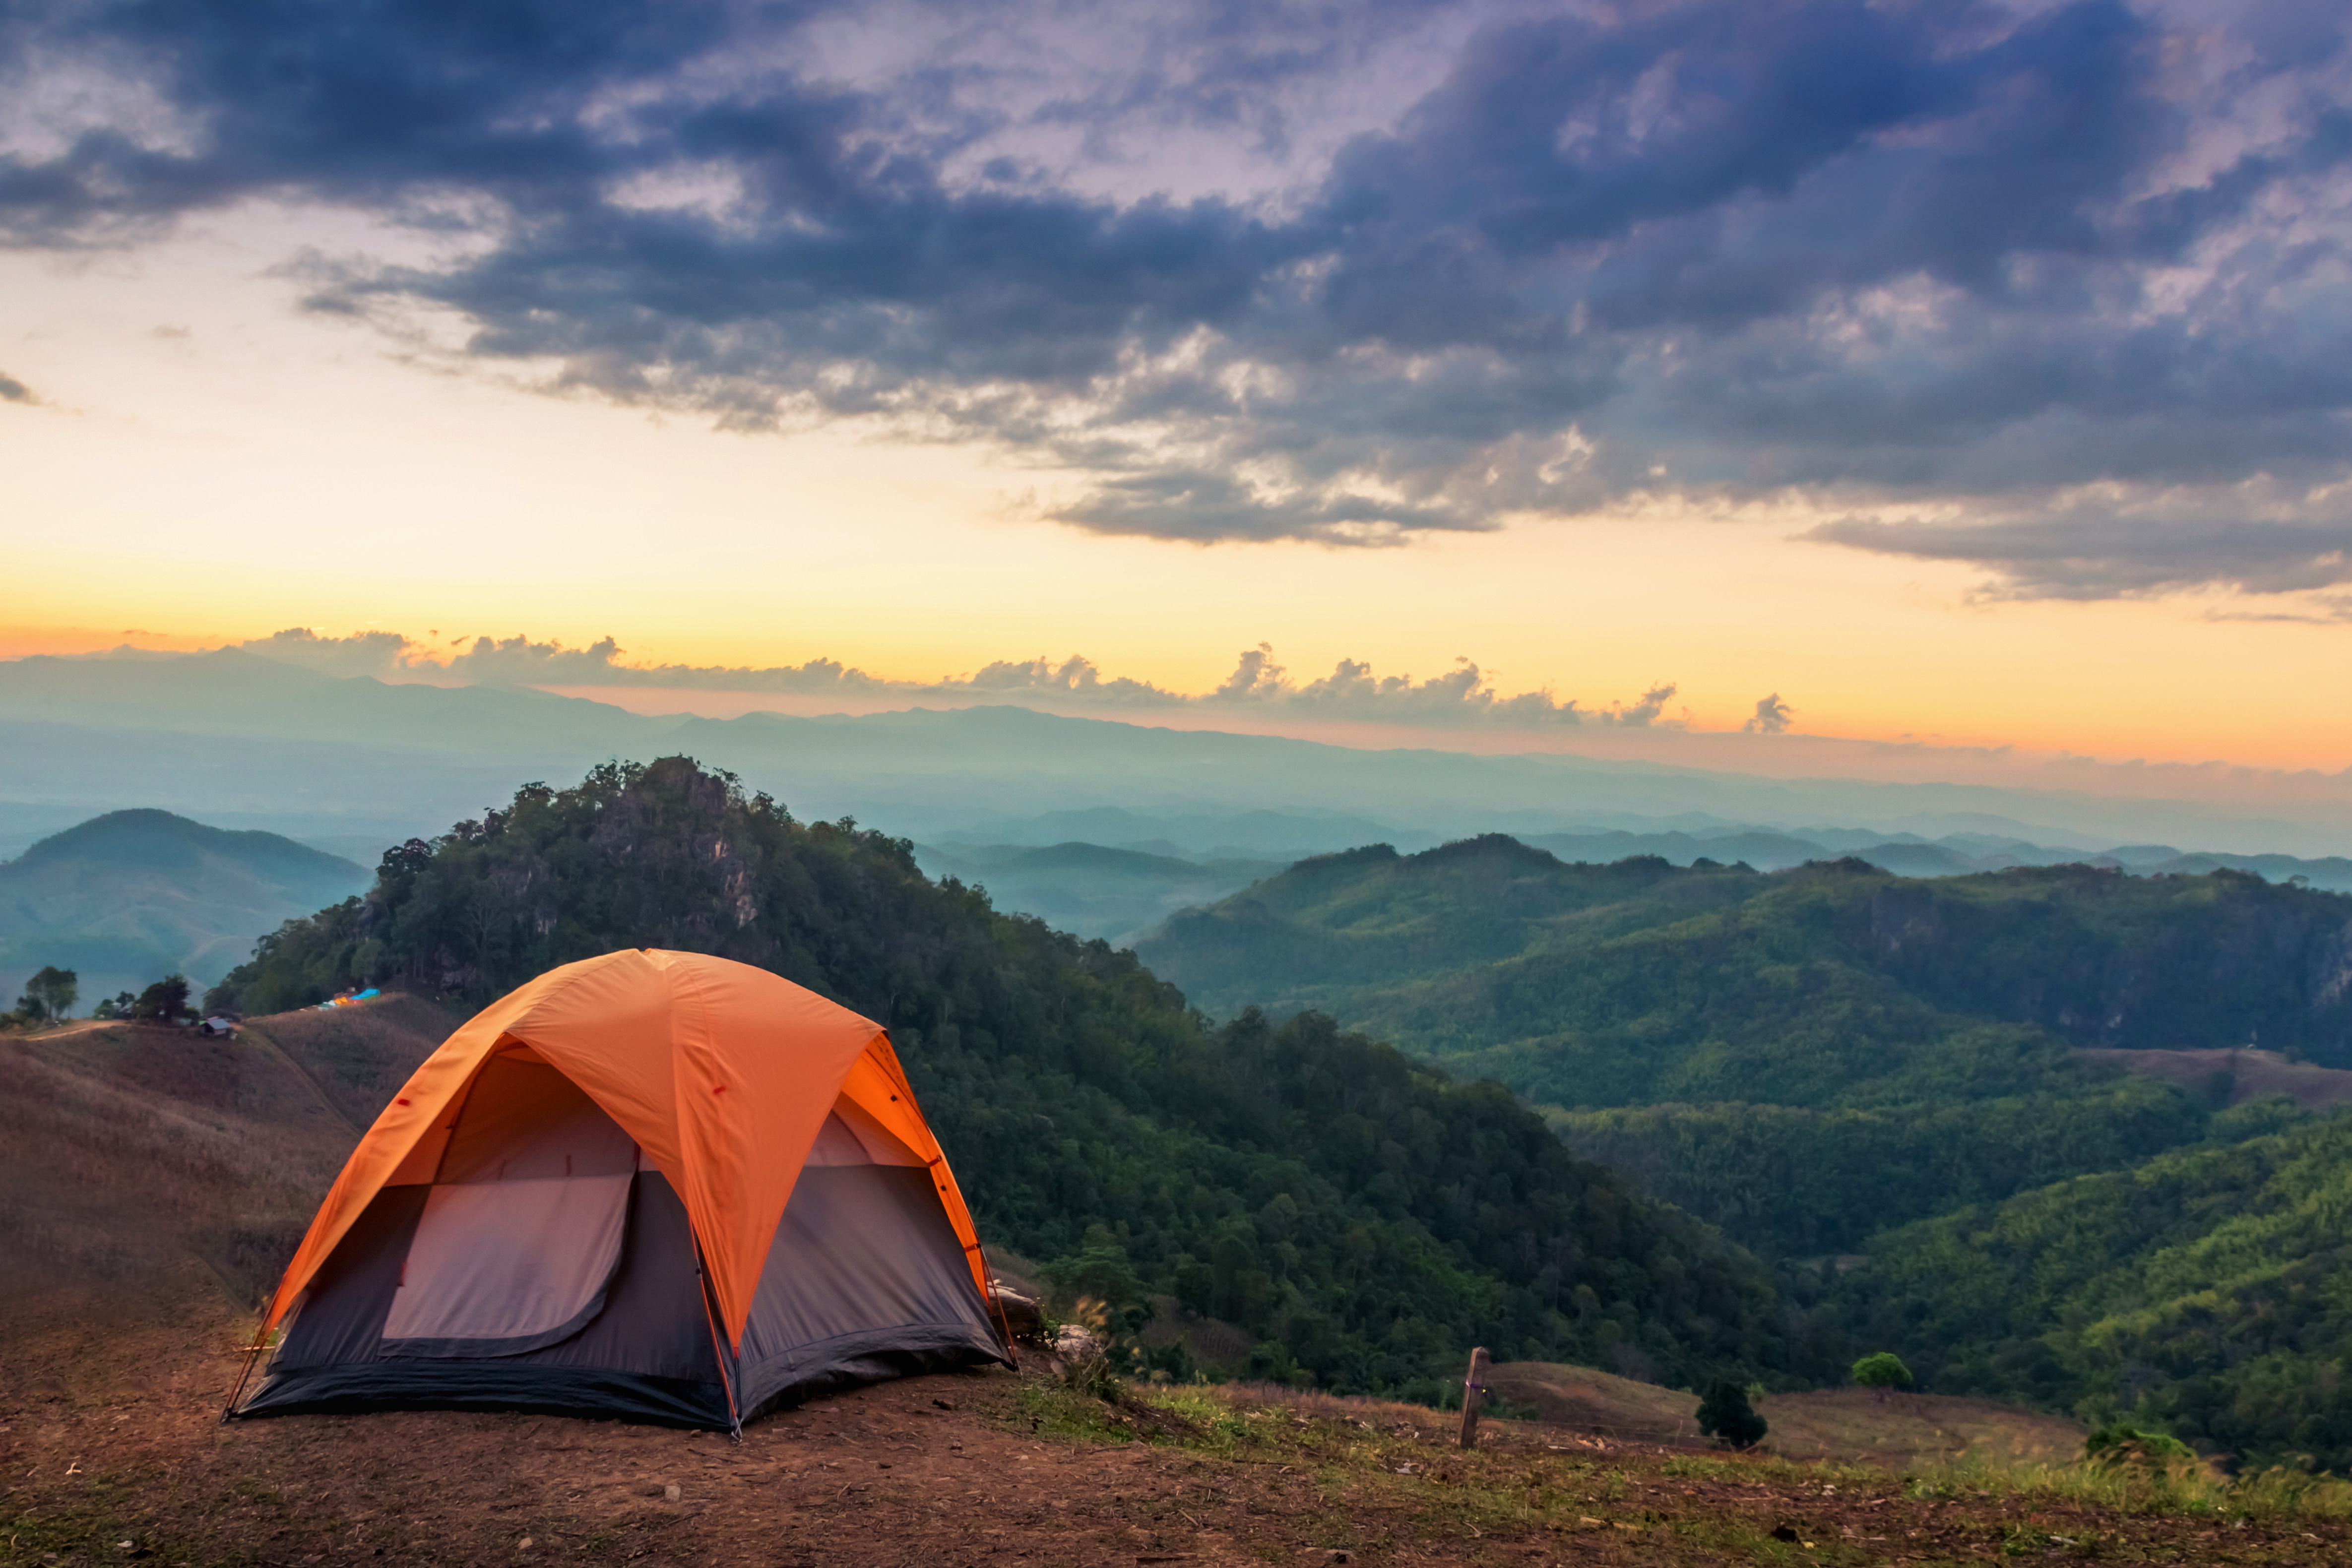 The 7 best ways to find a campsite this summer